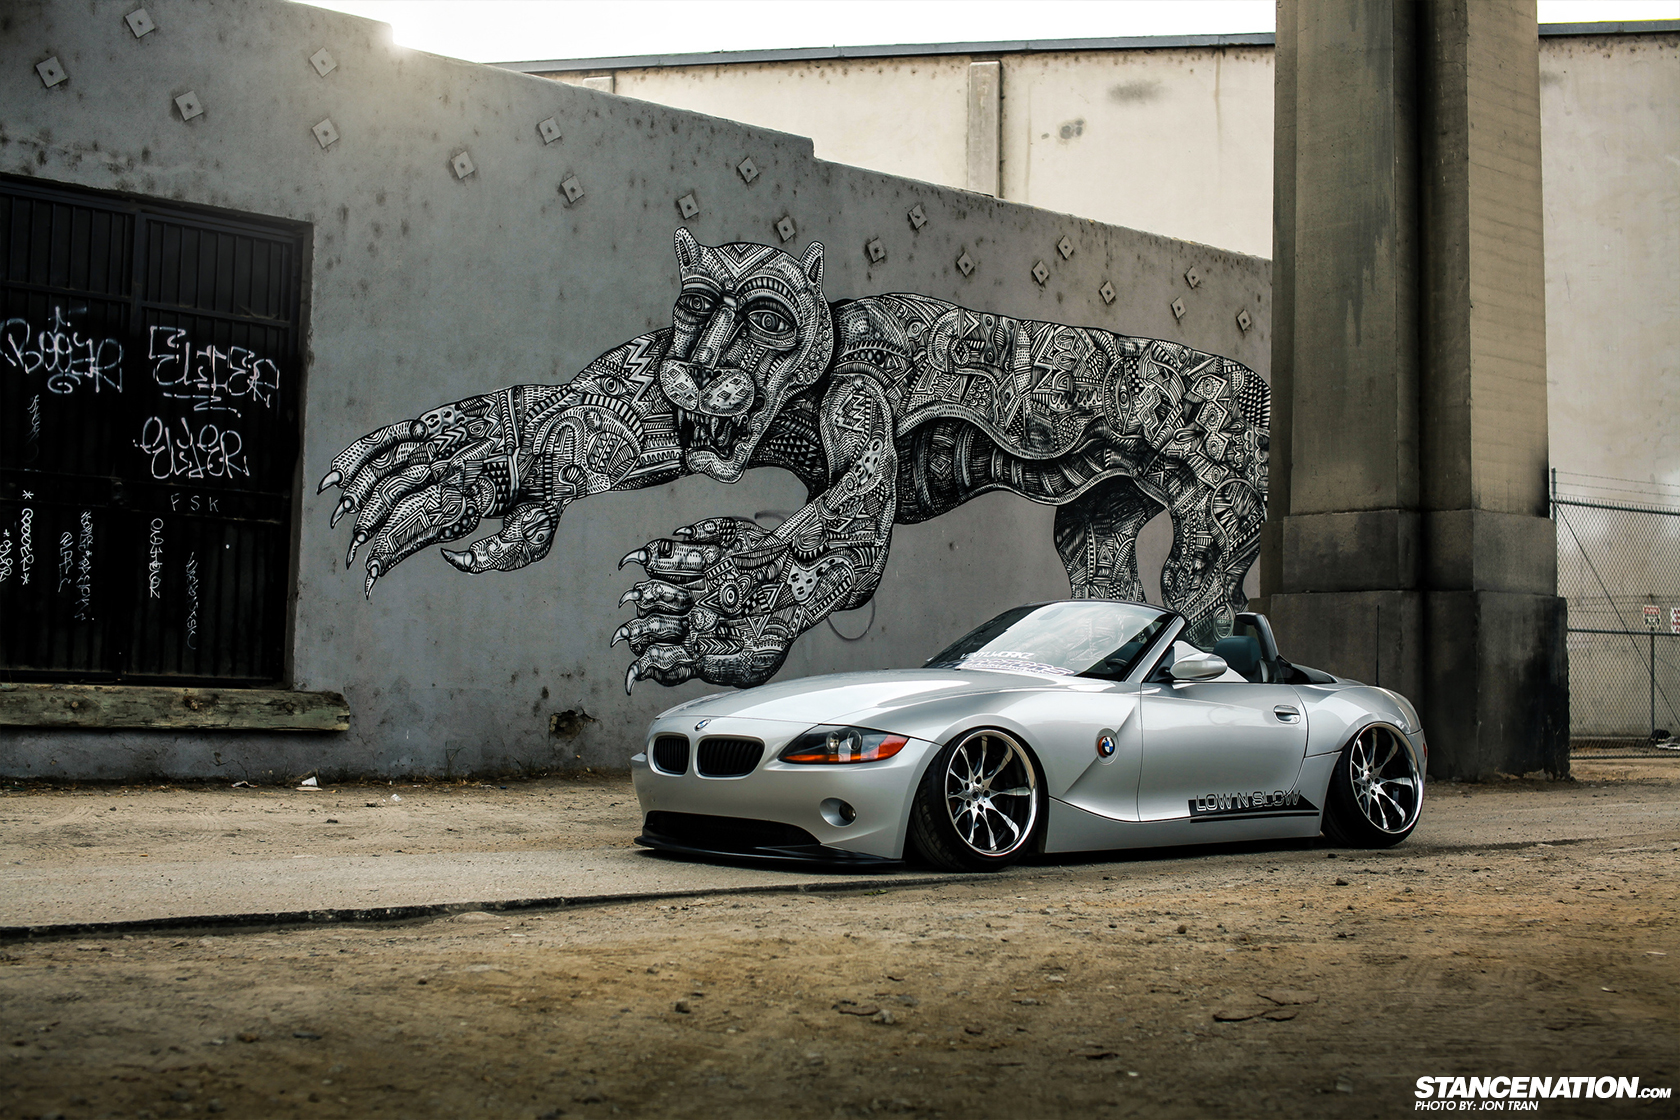 Ugliest Z Ive Seen Are There Worse Ones Z4 Forum Com